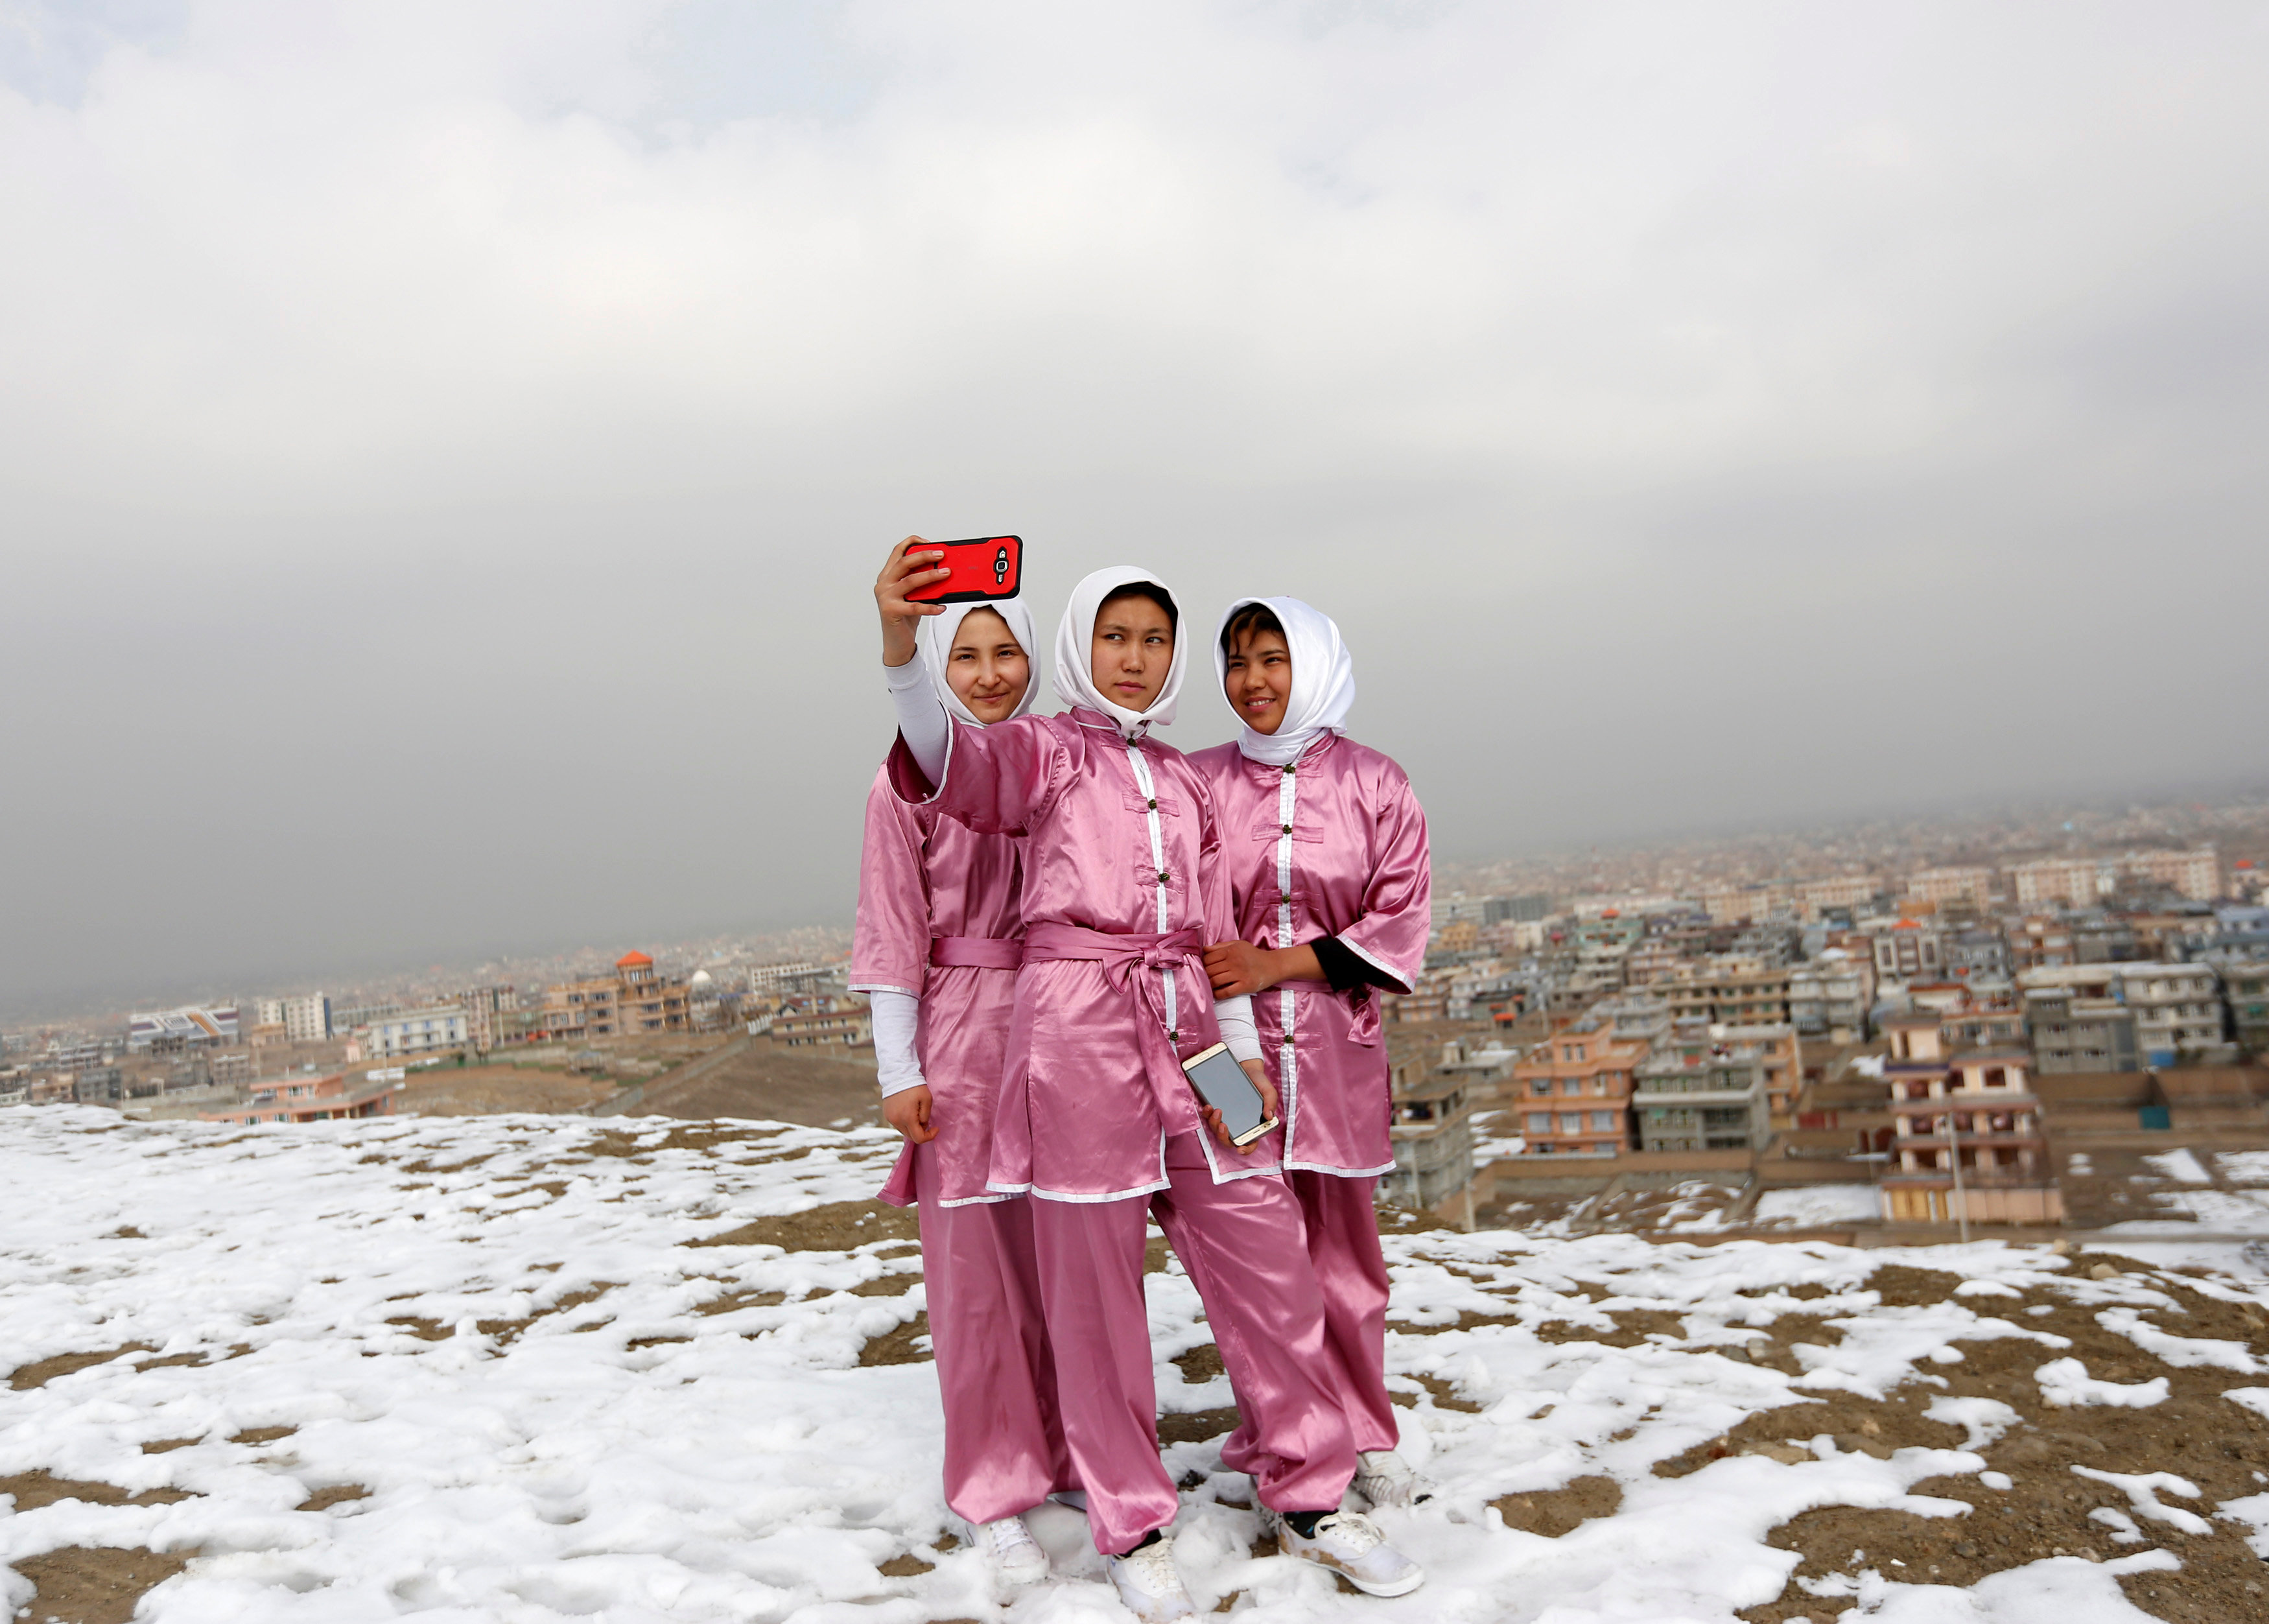 Latifa Safay (R), 15, Hanifa Doosti (C), 17, and Suraya Rezai, 19, students of the Shaolin Wushu club, take a selfie before practicing on a hilltop in Kabul, Afghanistan January 29, 2017. REUTERS/Mohammad Ismail